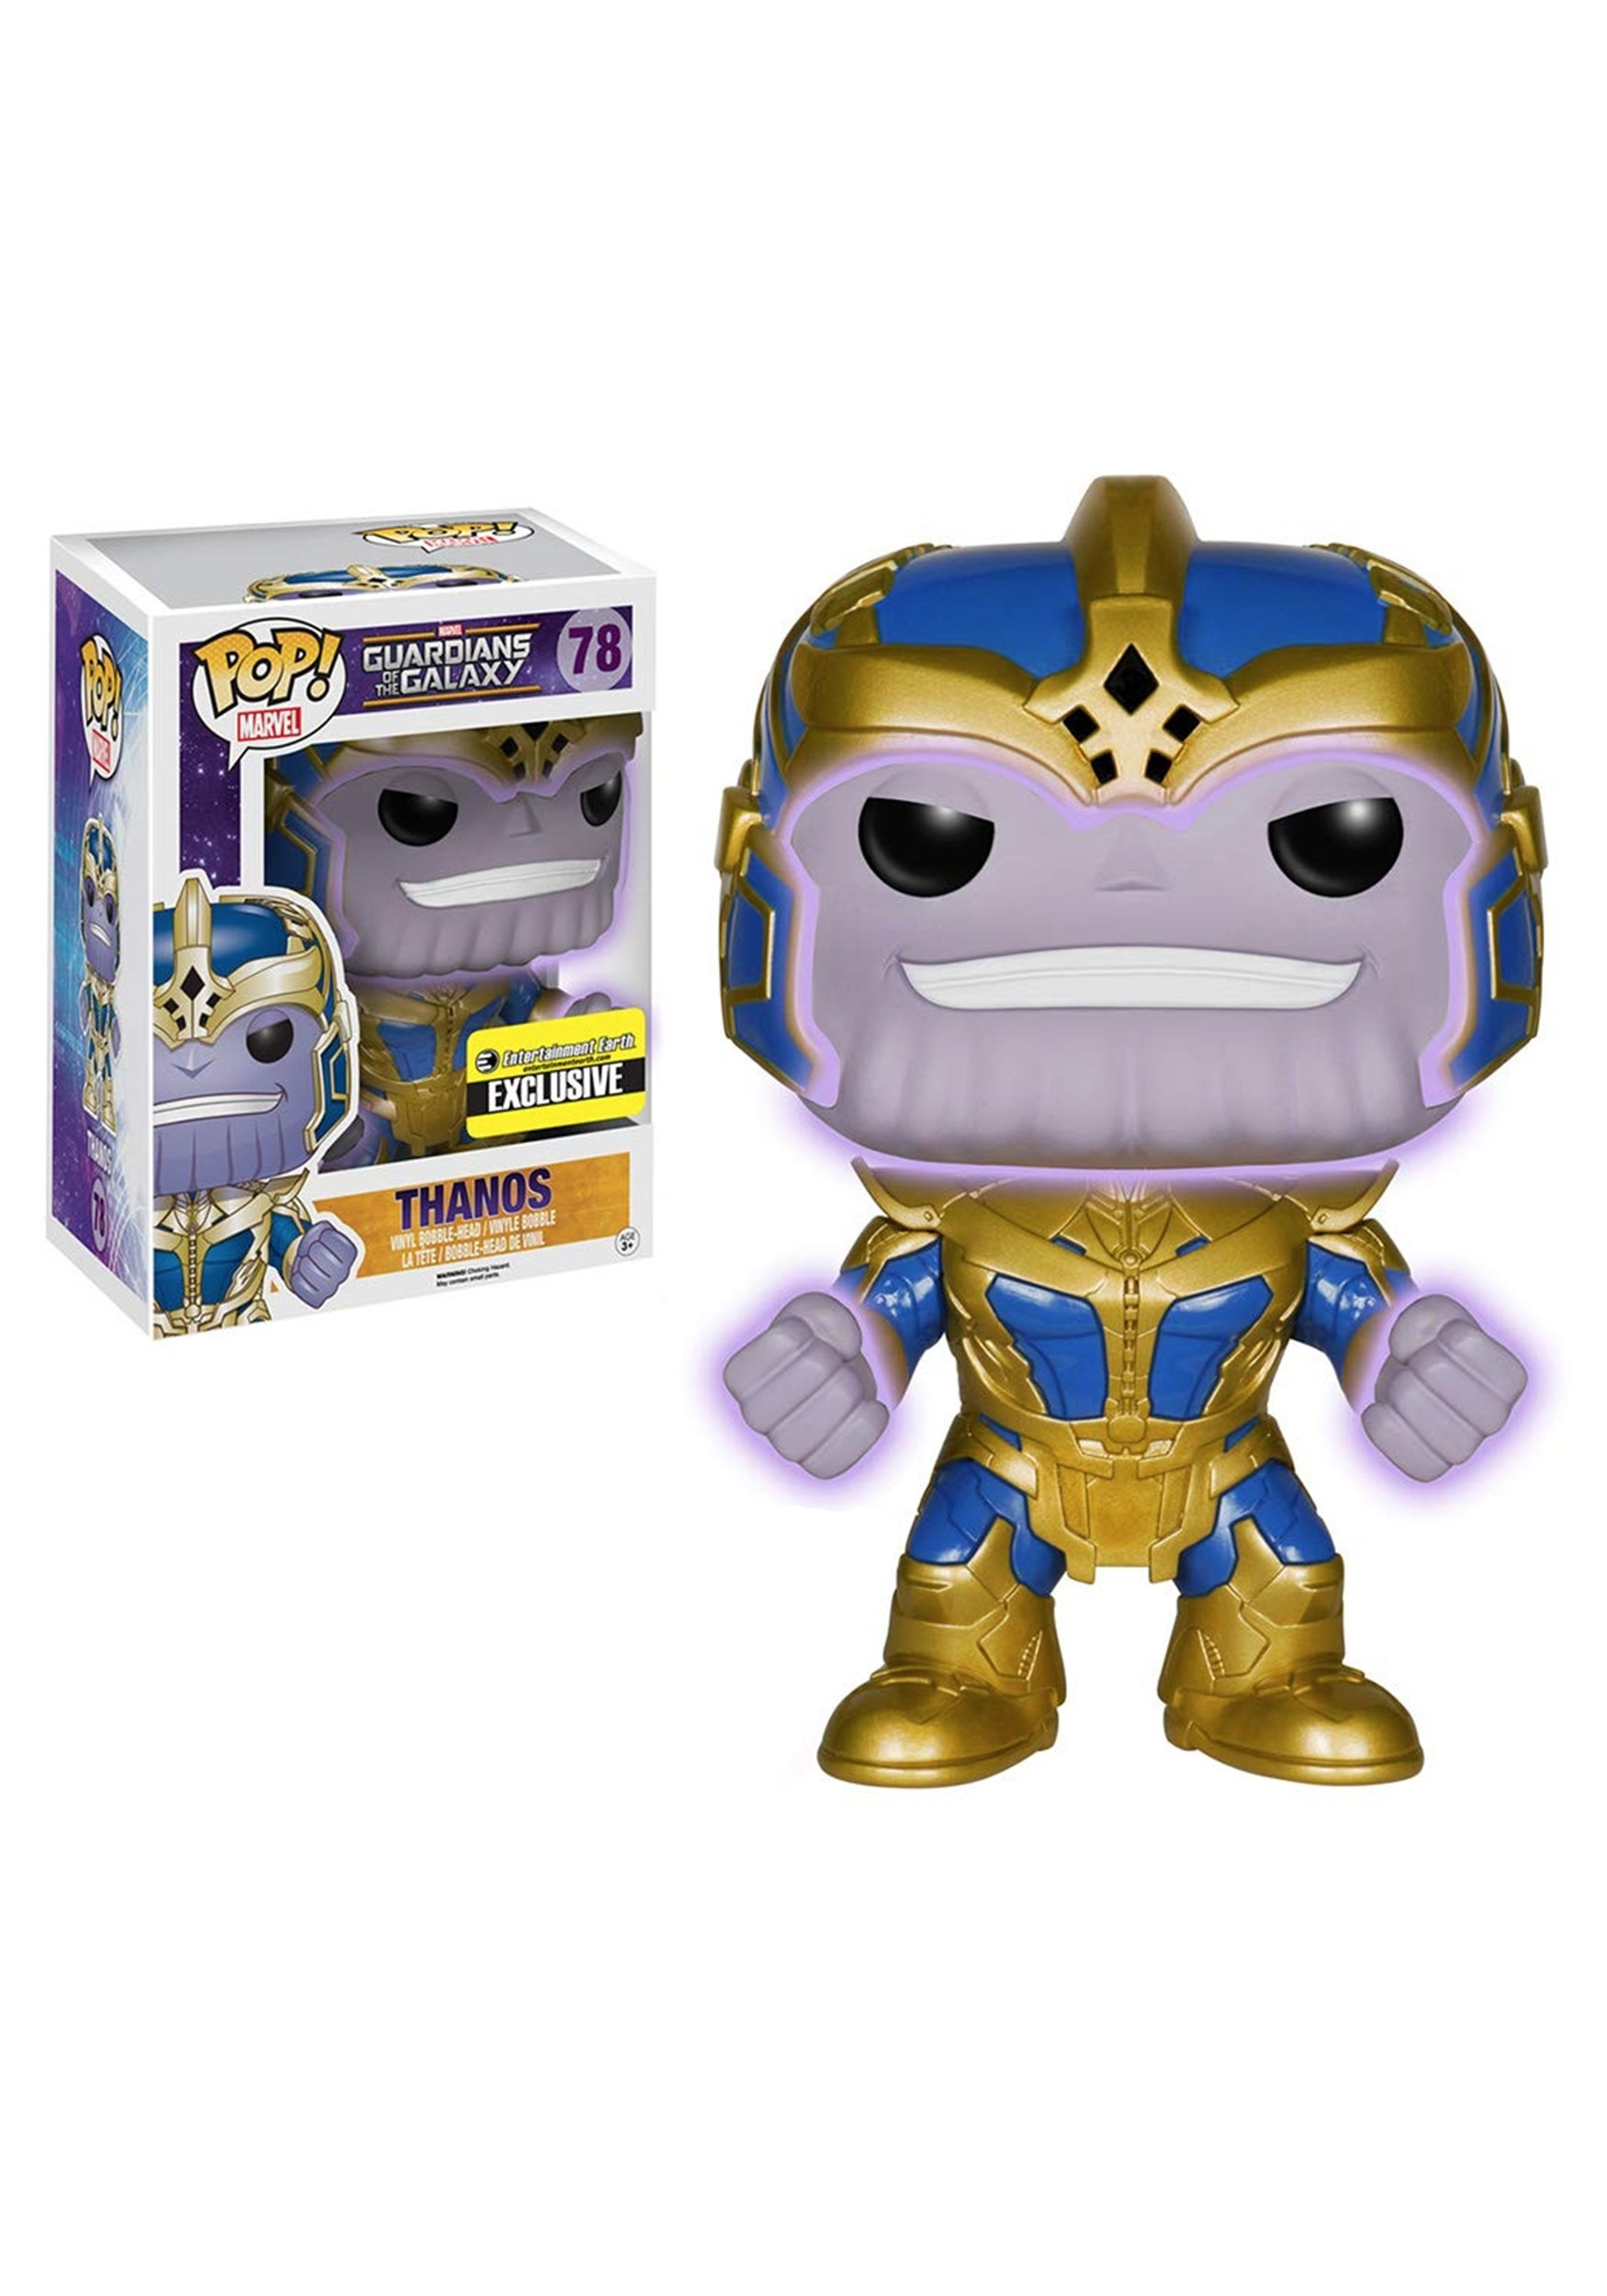 Marvel Guardians of the Galaxy Thanos Glow-in-the-Dark 6-Inch Pop! Vinyl Figure